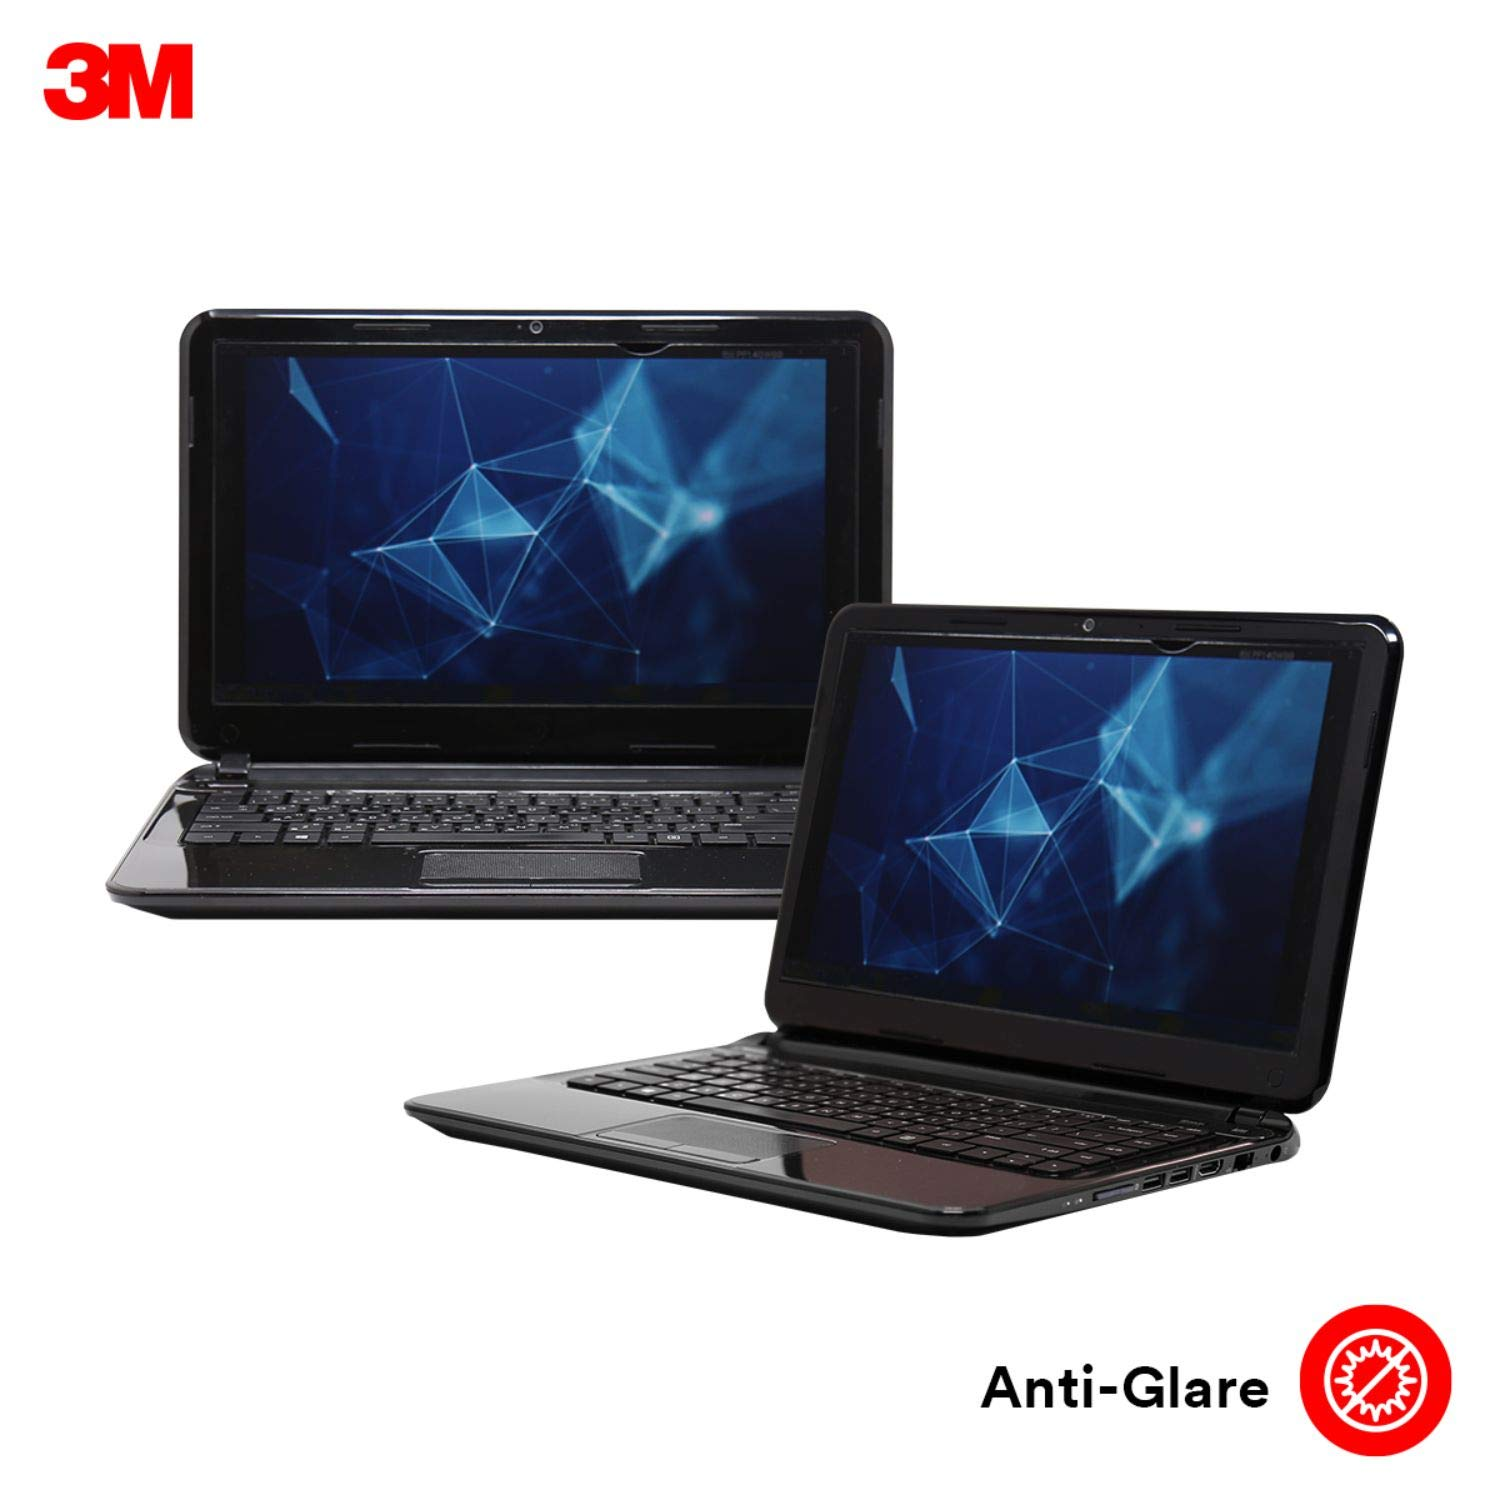 3M Anti-Glare Filter for 14'' Widescreen Laptop (AG140W9B) by 3M